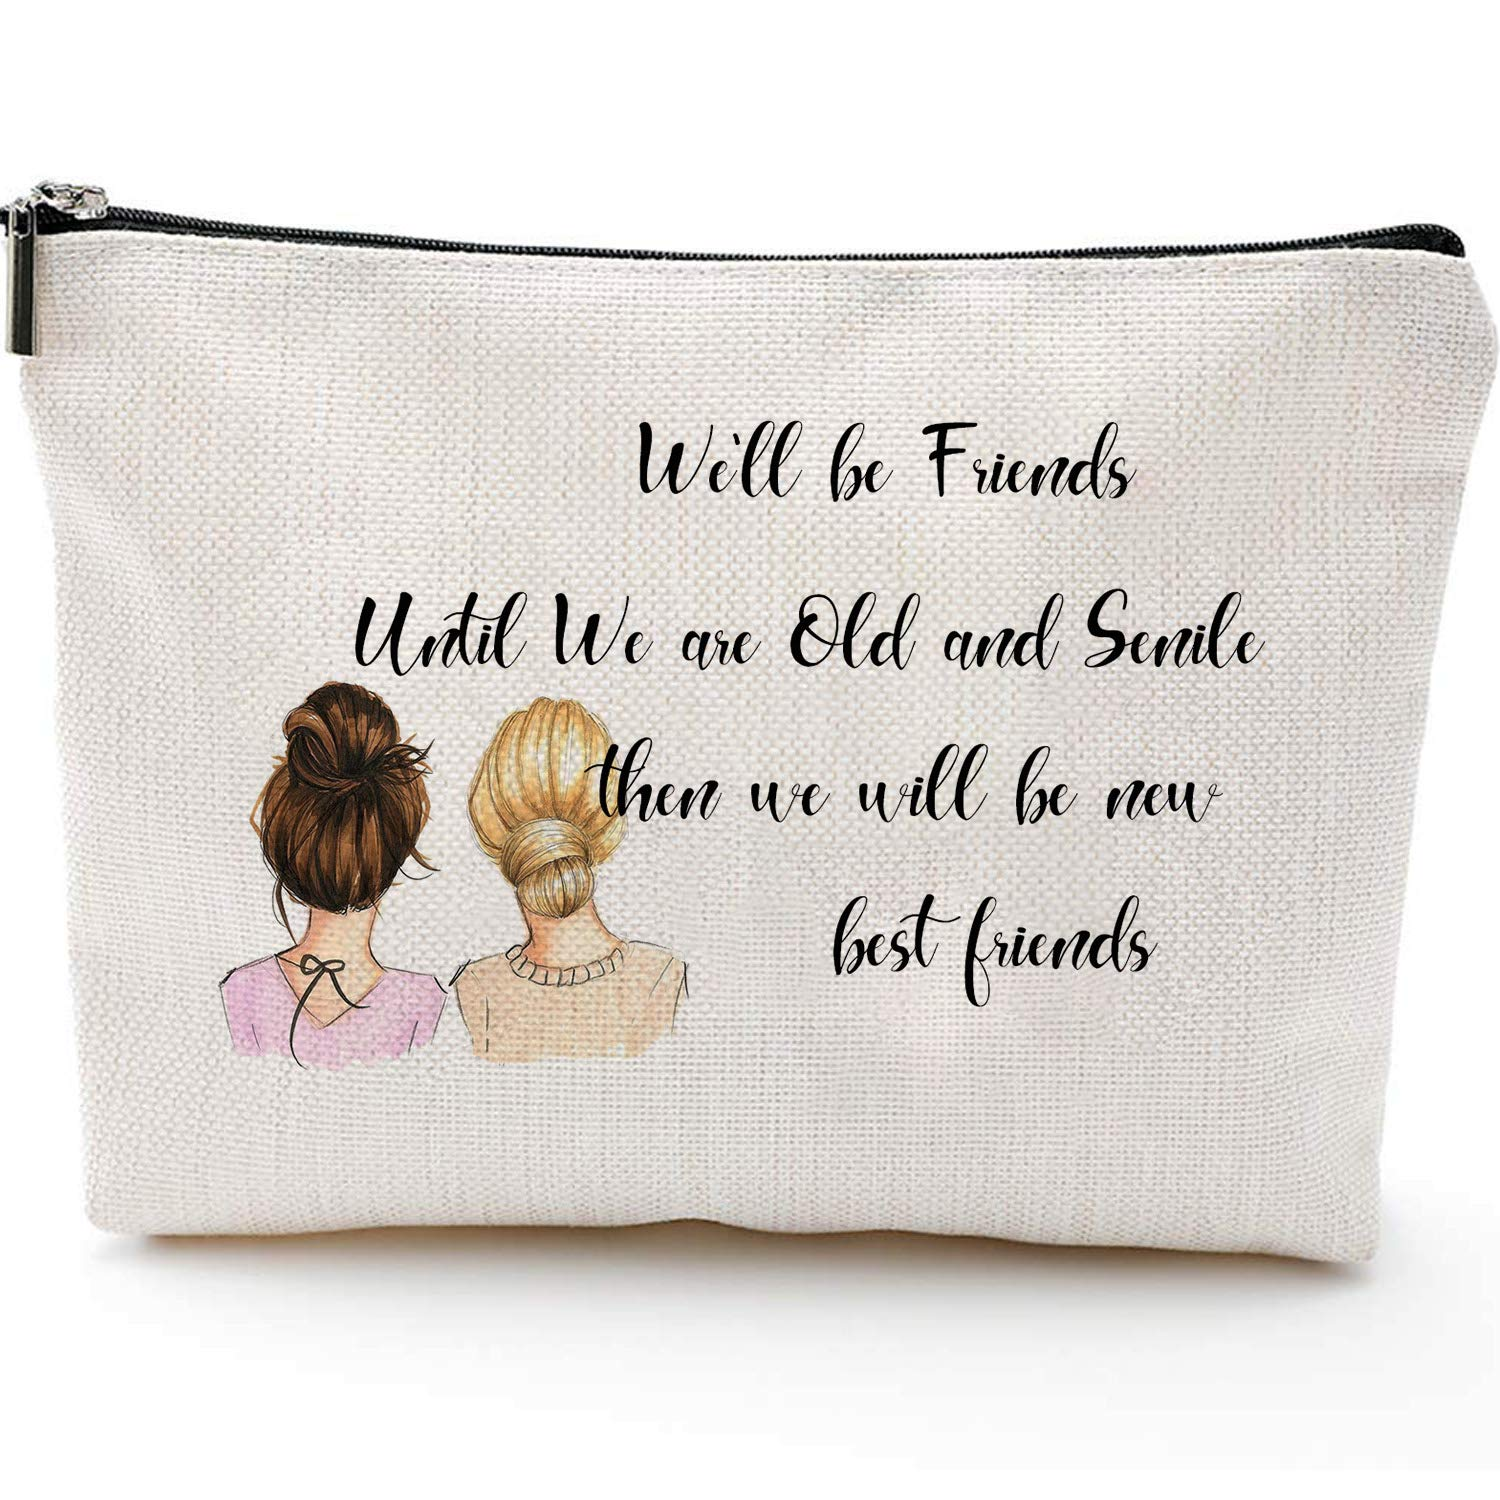 We'll be Friends Until We Are Old And Senile Then We Will Be New-best Friends Friends Gifts Best Friend Long Distance Friendship Gifts for Women Funny Birthday,Soul Sister, Girlfriends Makeup Bag